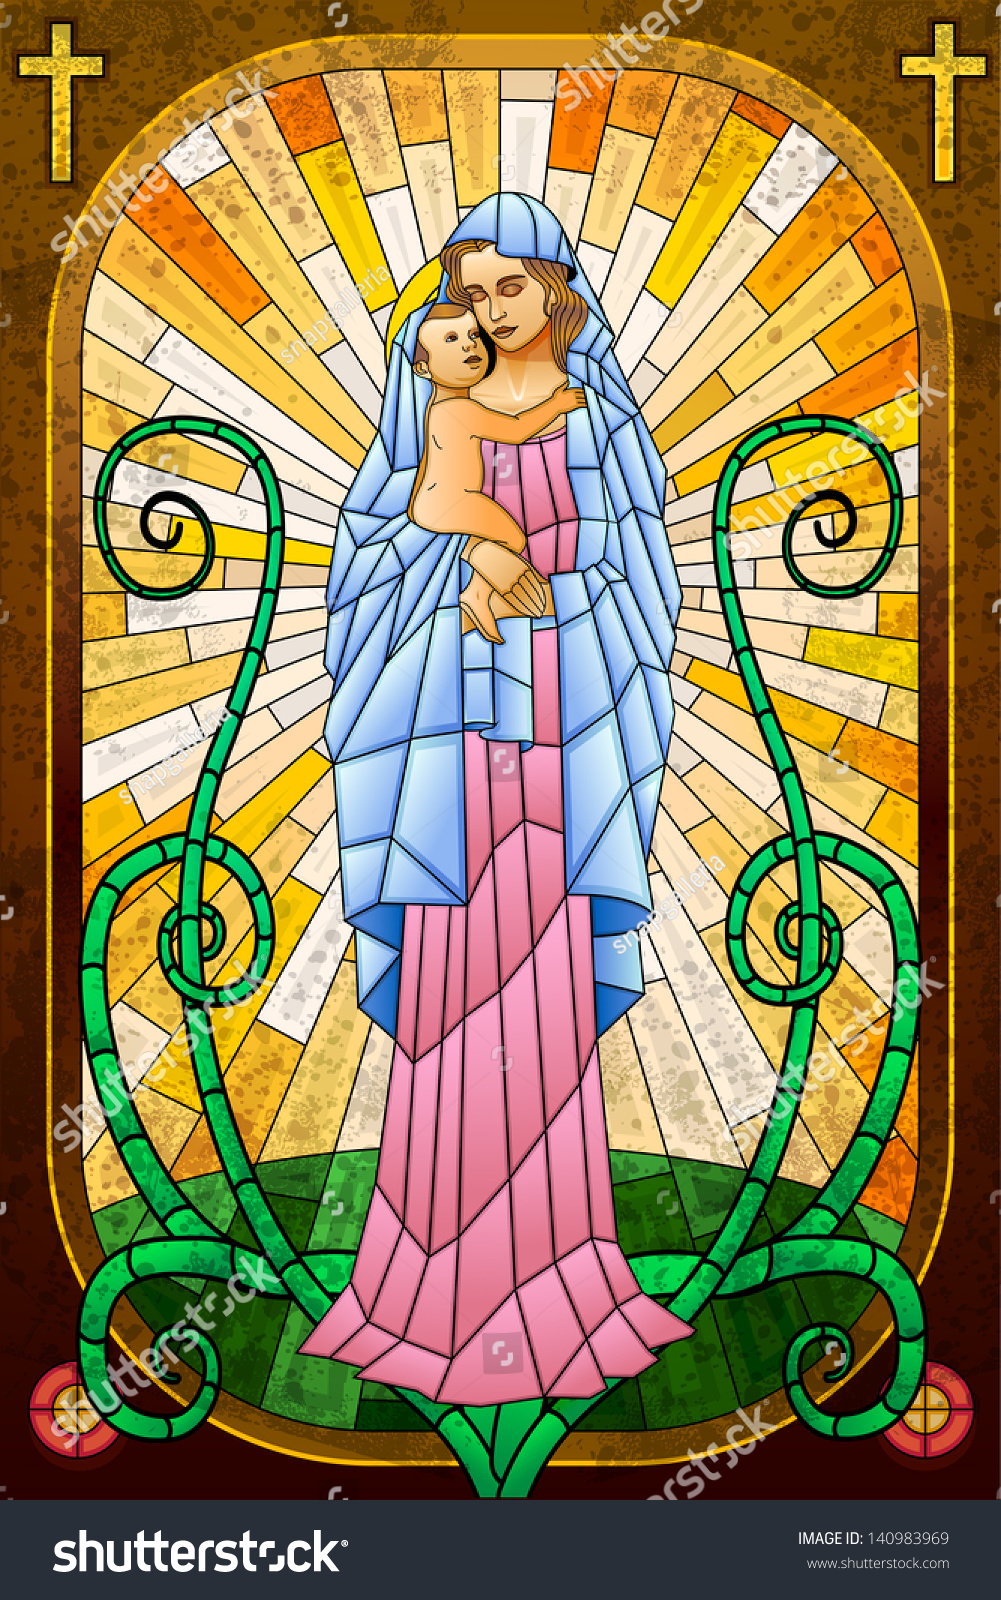 Easy Edit Vector Illustration Mother Mary Stock Vector